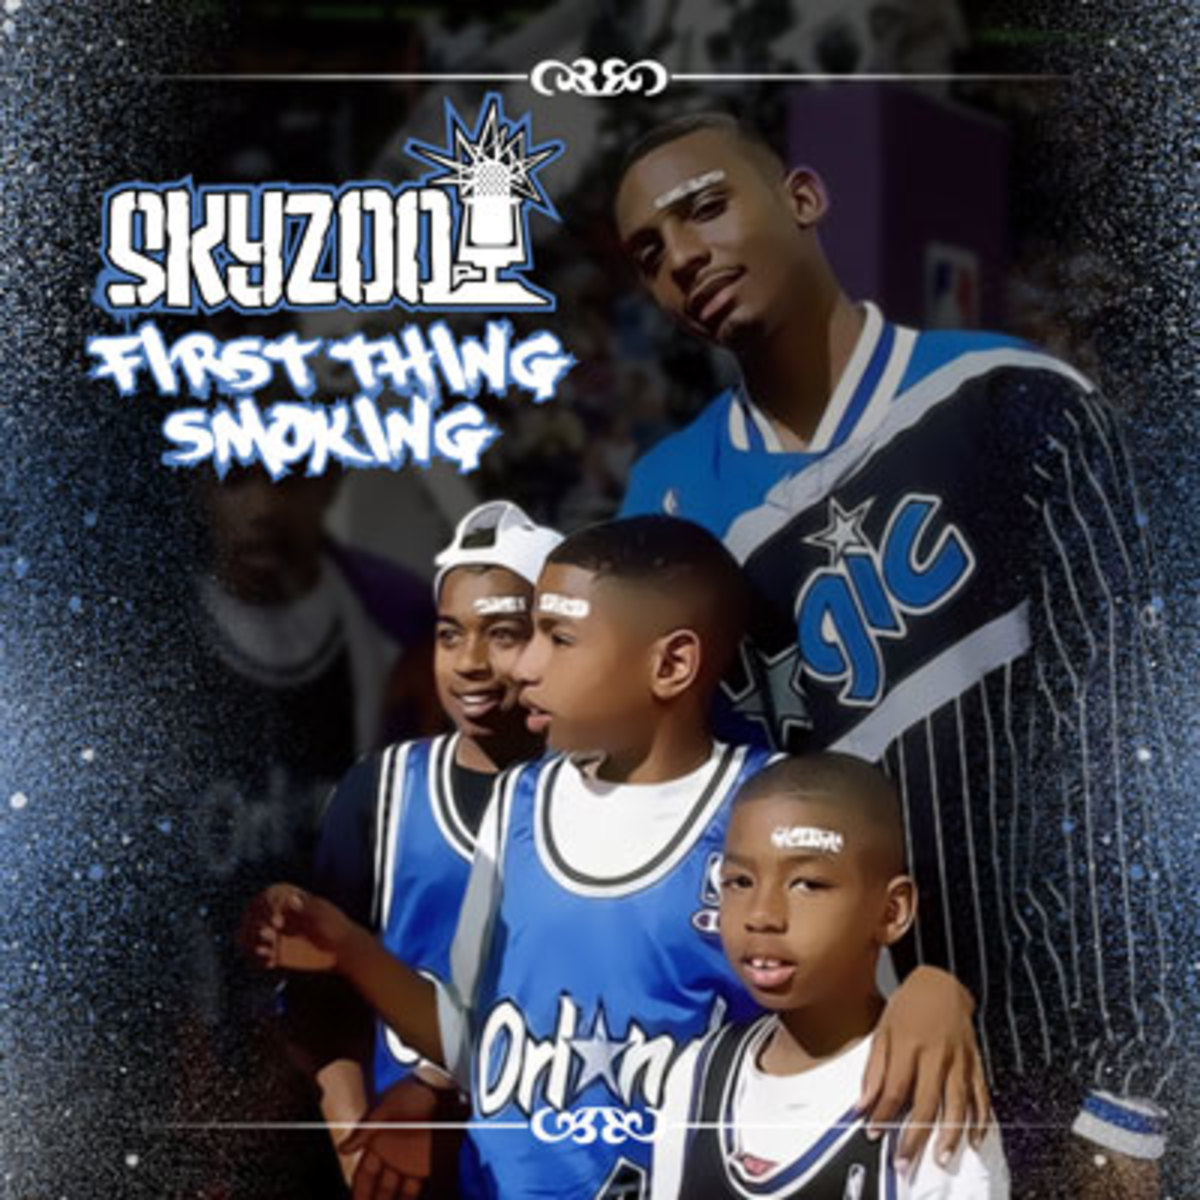 skyzoo-firstthingsmoking.jpg